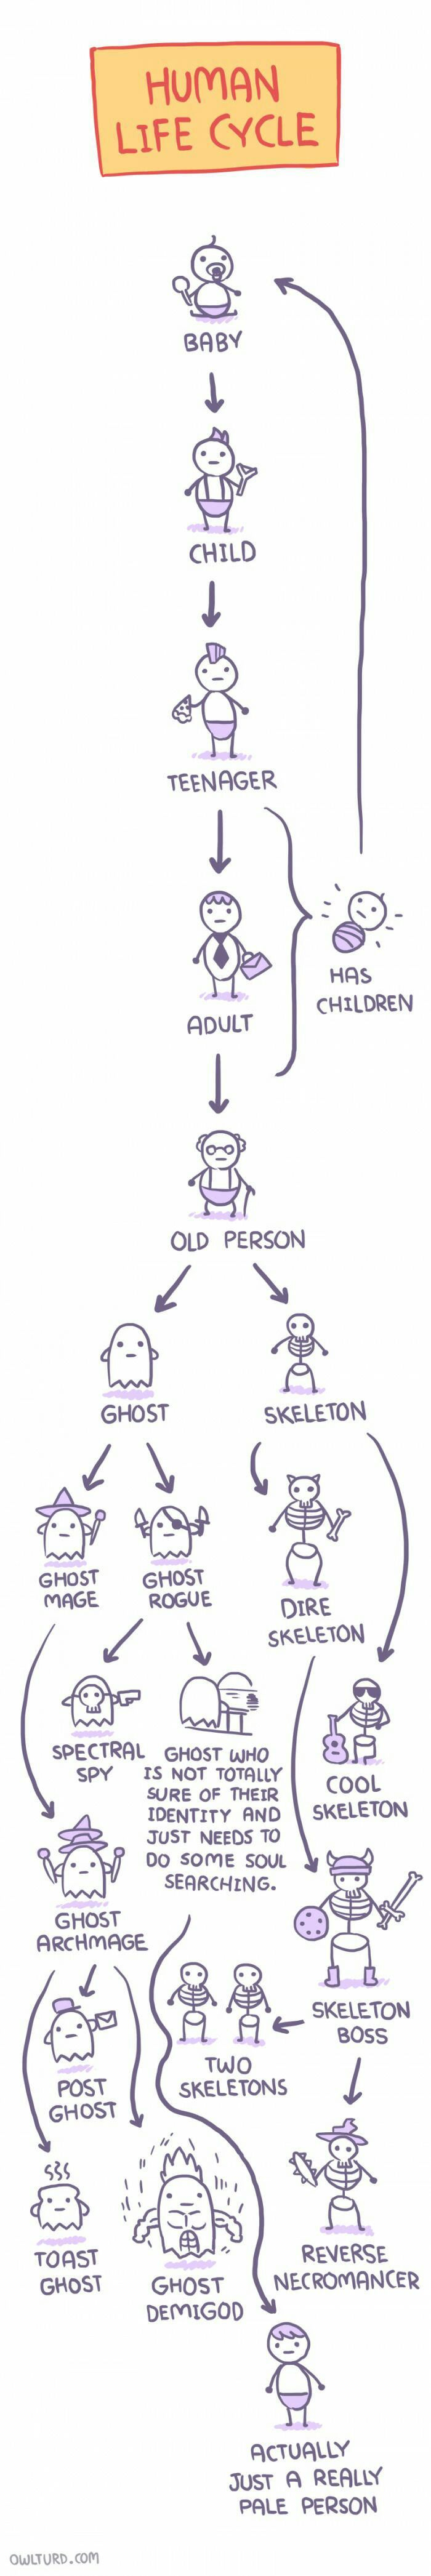 The human life cycle through gamers eyes #videogameproblems #videogames